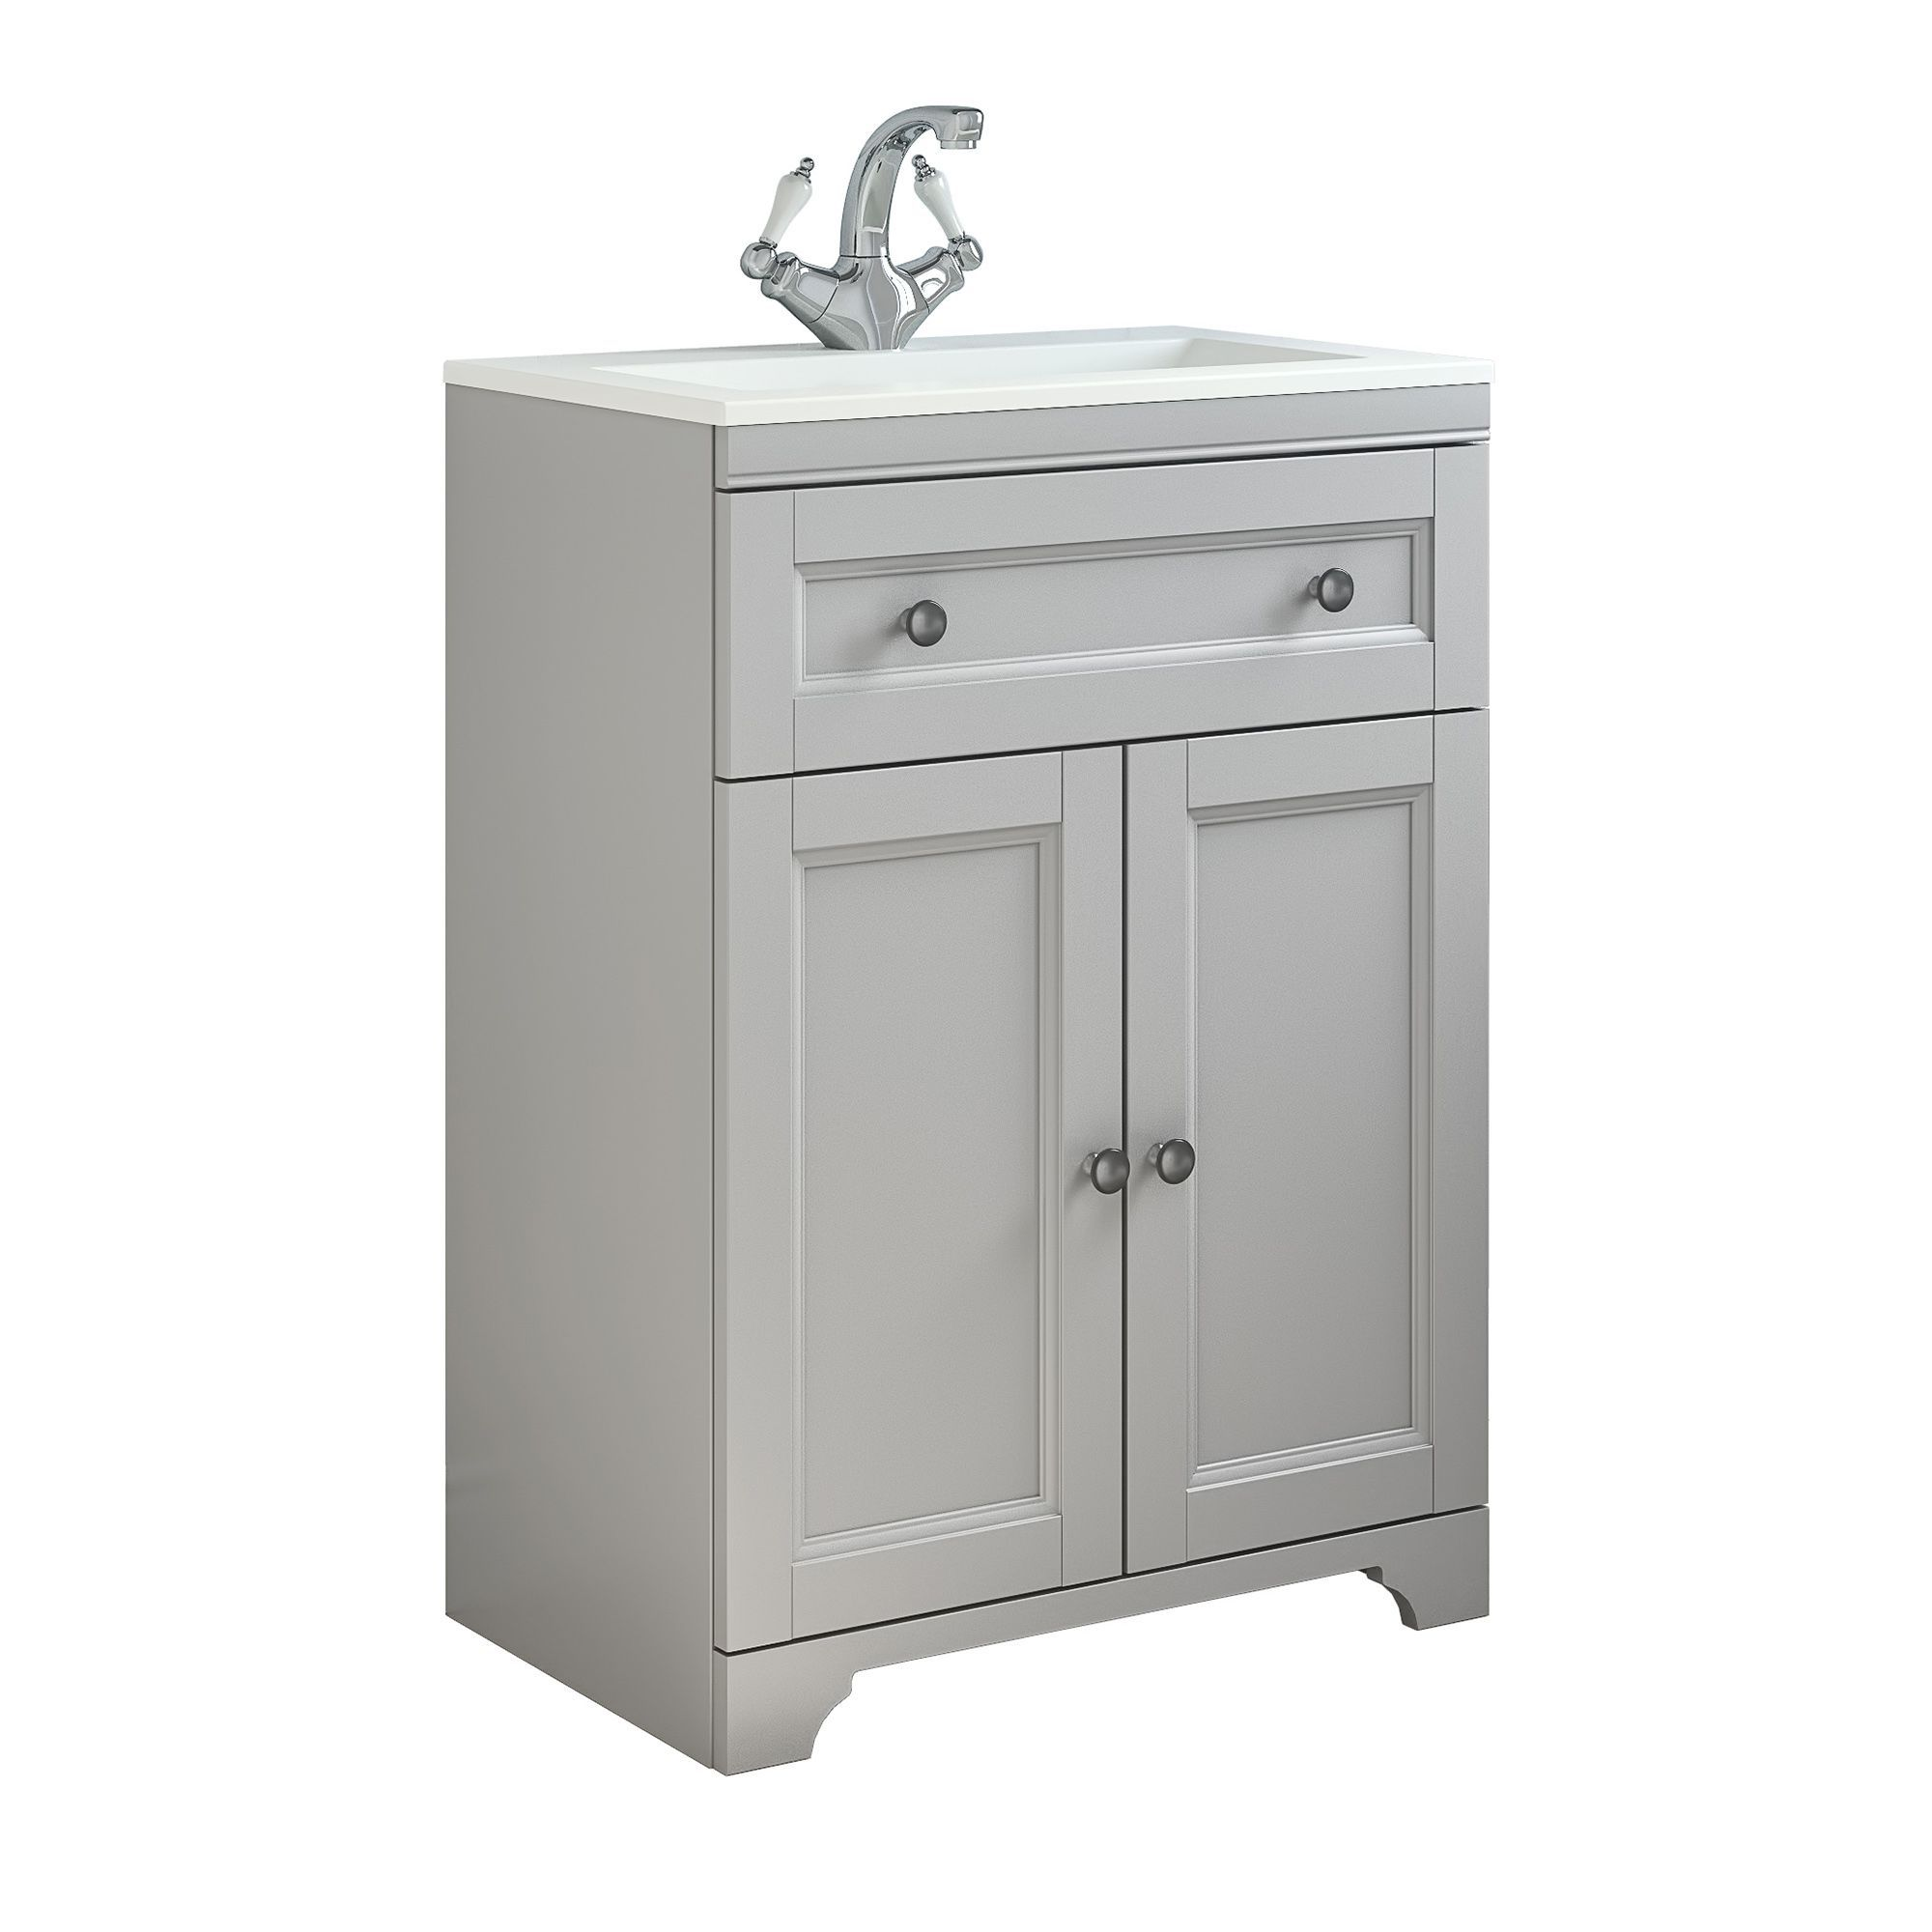 Vanity Light No Stud : Cooke & Lewis Chadleigh Matt Light Grey Vanity Unit & Basin Set Departments DIY at B&Q